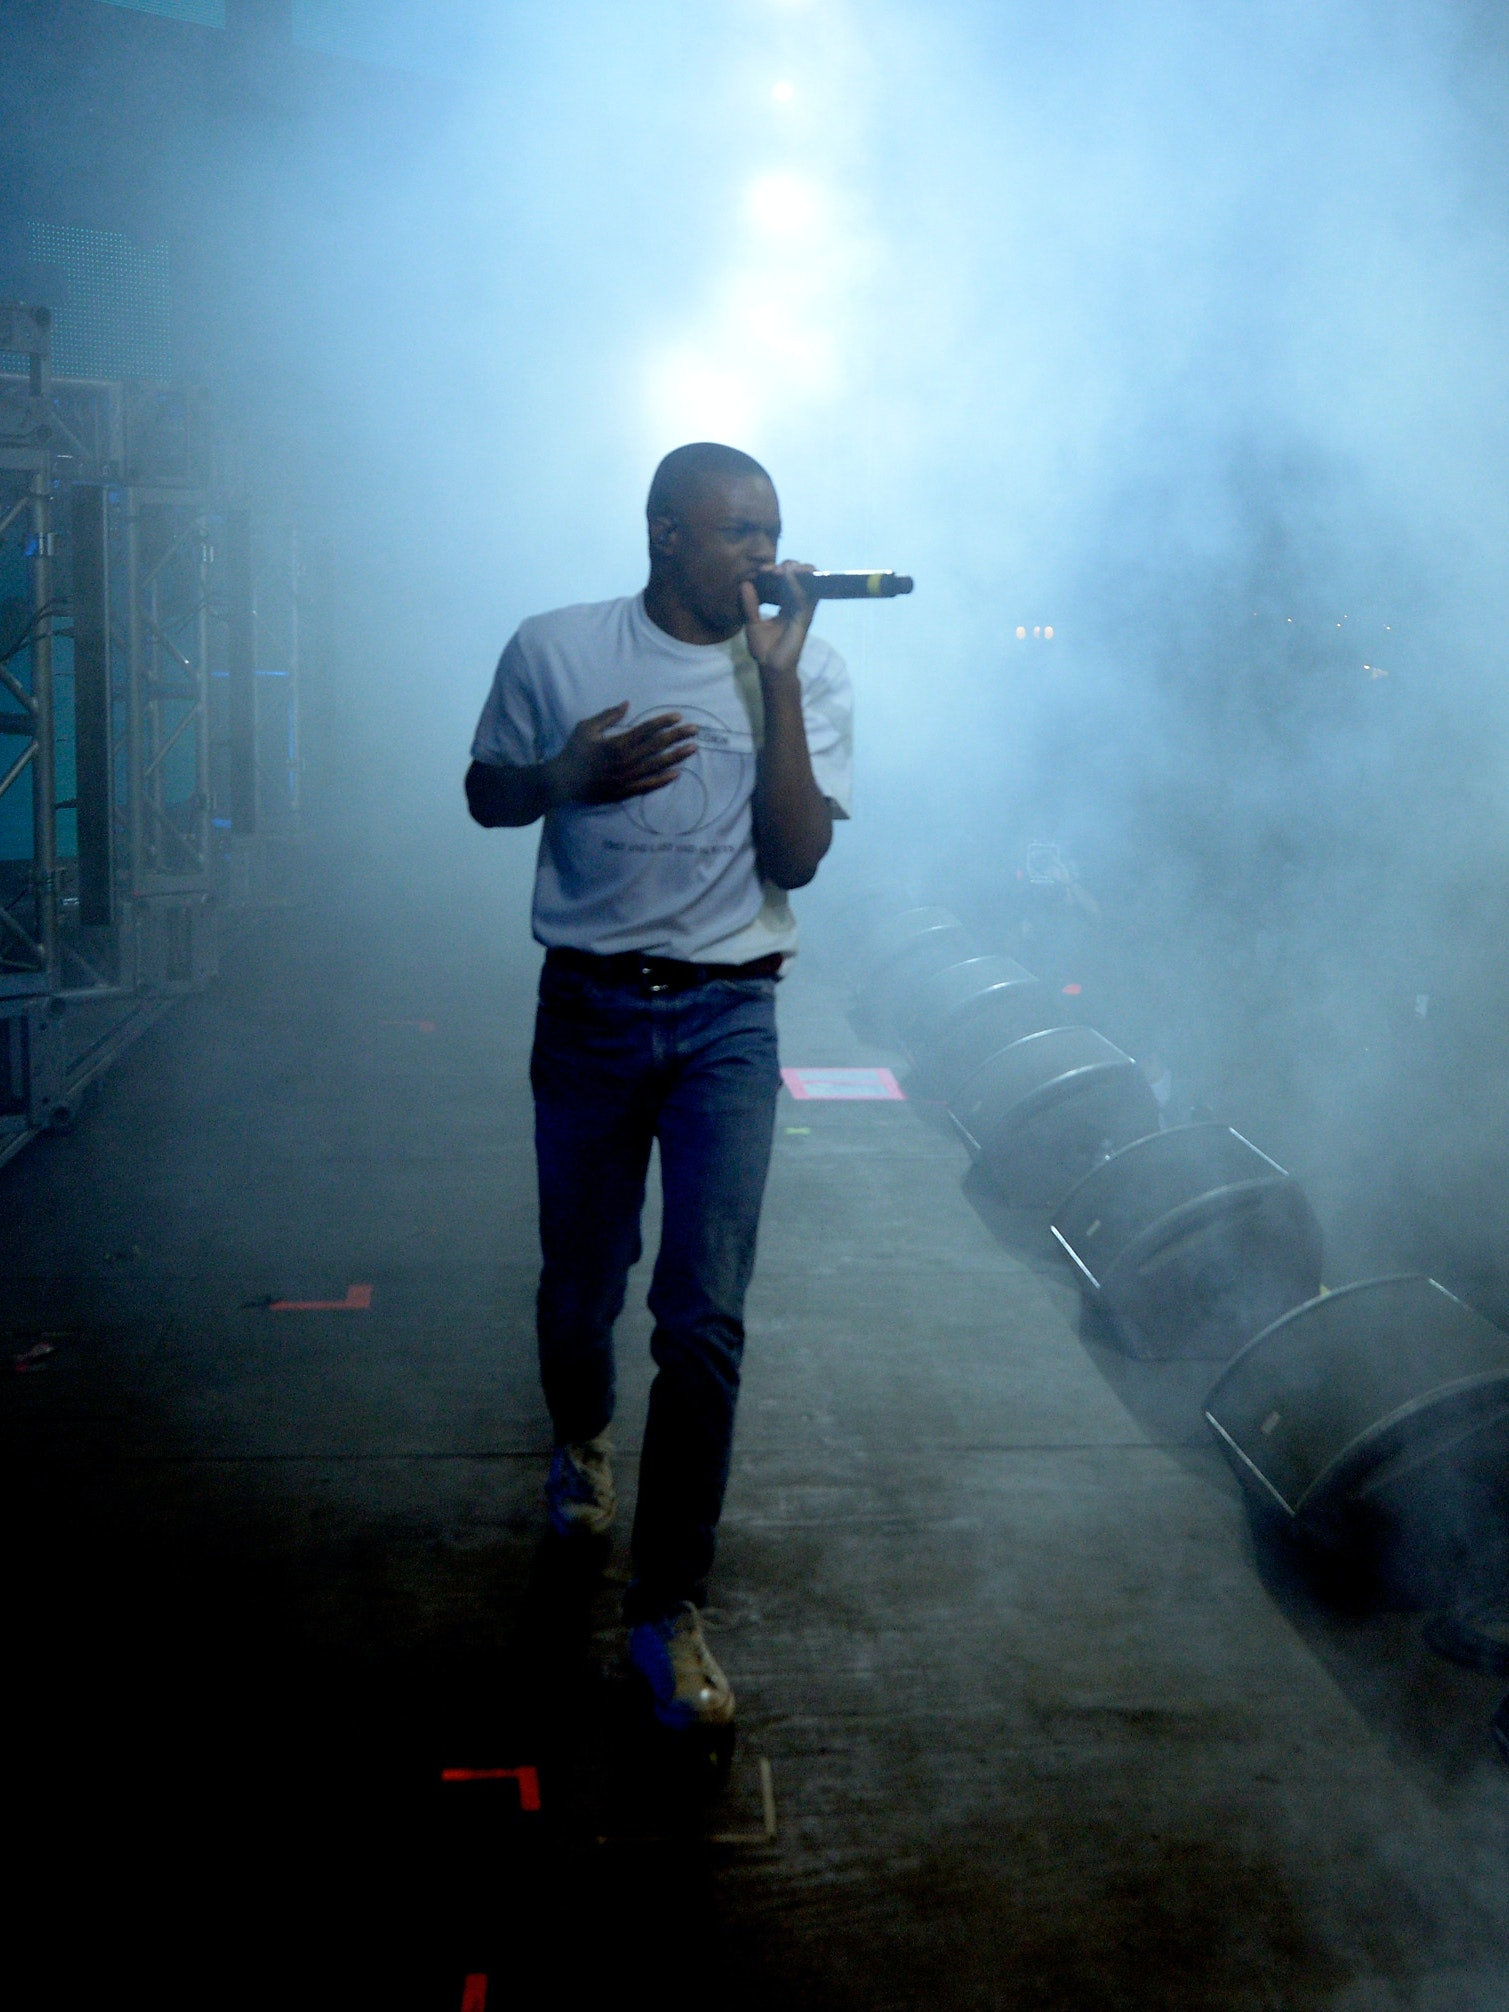 INDIO, CA - APRIL 23:  Recording artist Vince Staples performs onstage during day 2 of the 2016 Coachella Valley Music & Arts Festival Weekend 2 at the Empire Polo Club on April 23, 2016 in Indio, California.  (Photo by Michael Tullberg/Getty Images for Coachella)